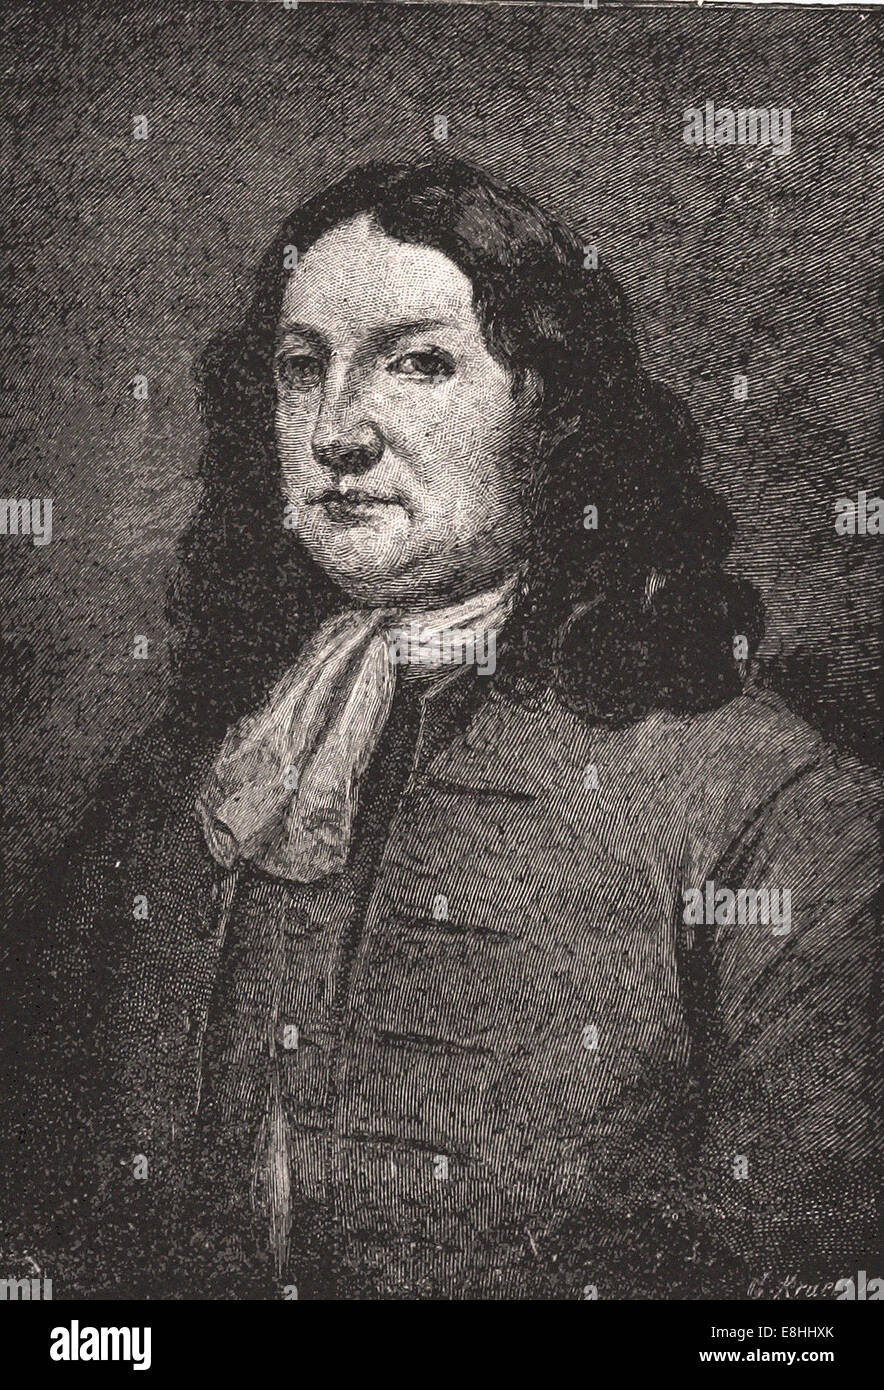 Portrait of William Penn Founder of Pennsylvania - Engraving - XIX th Century - Stock Image